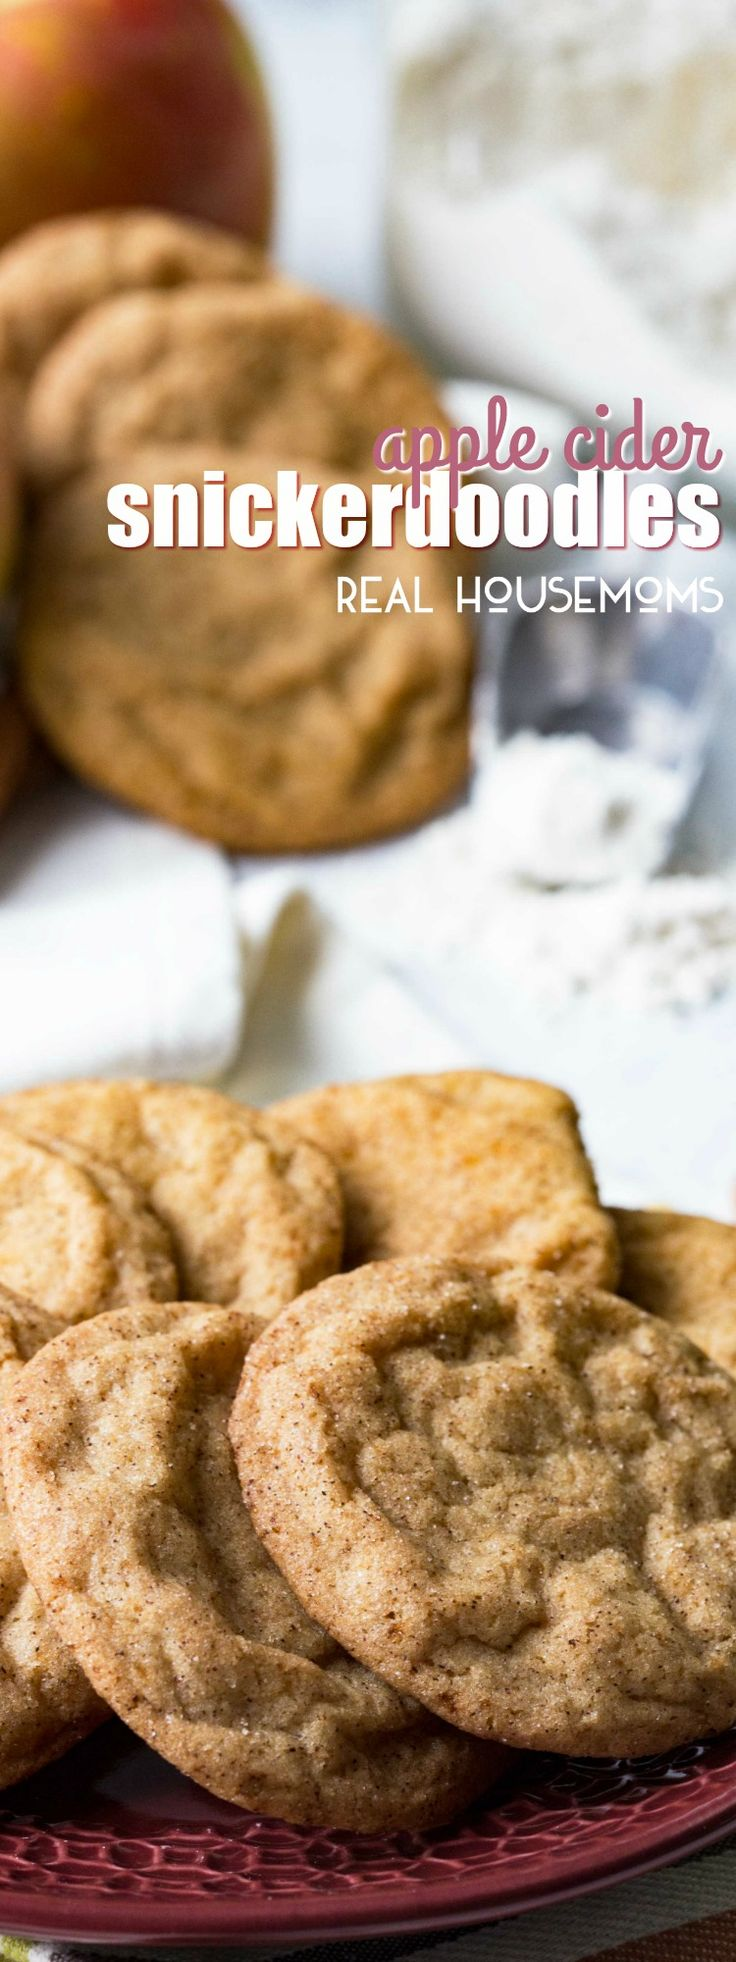 Apple Cider Snickerdoodles are the sweet cinnamon sugar cookie that  you love with apple cider flavor to really step up the Fall flavor! These are an easy dessert recipe that you'll love!!!      via @realhousemoms